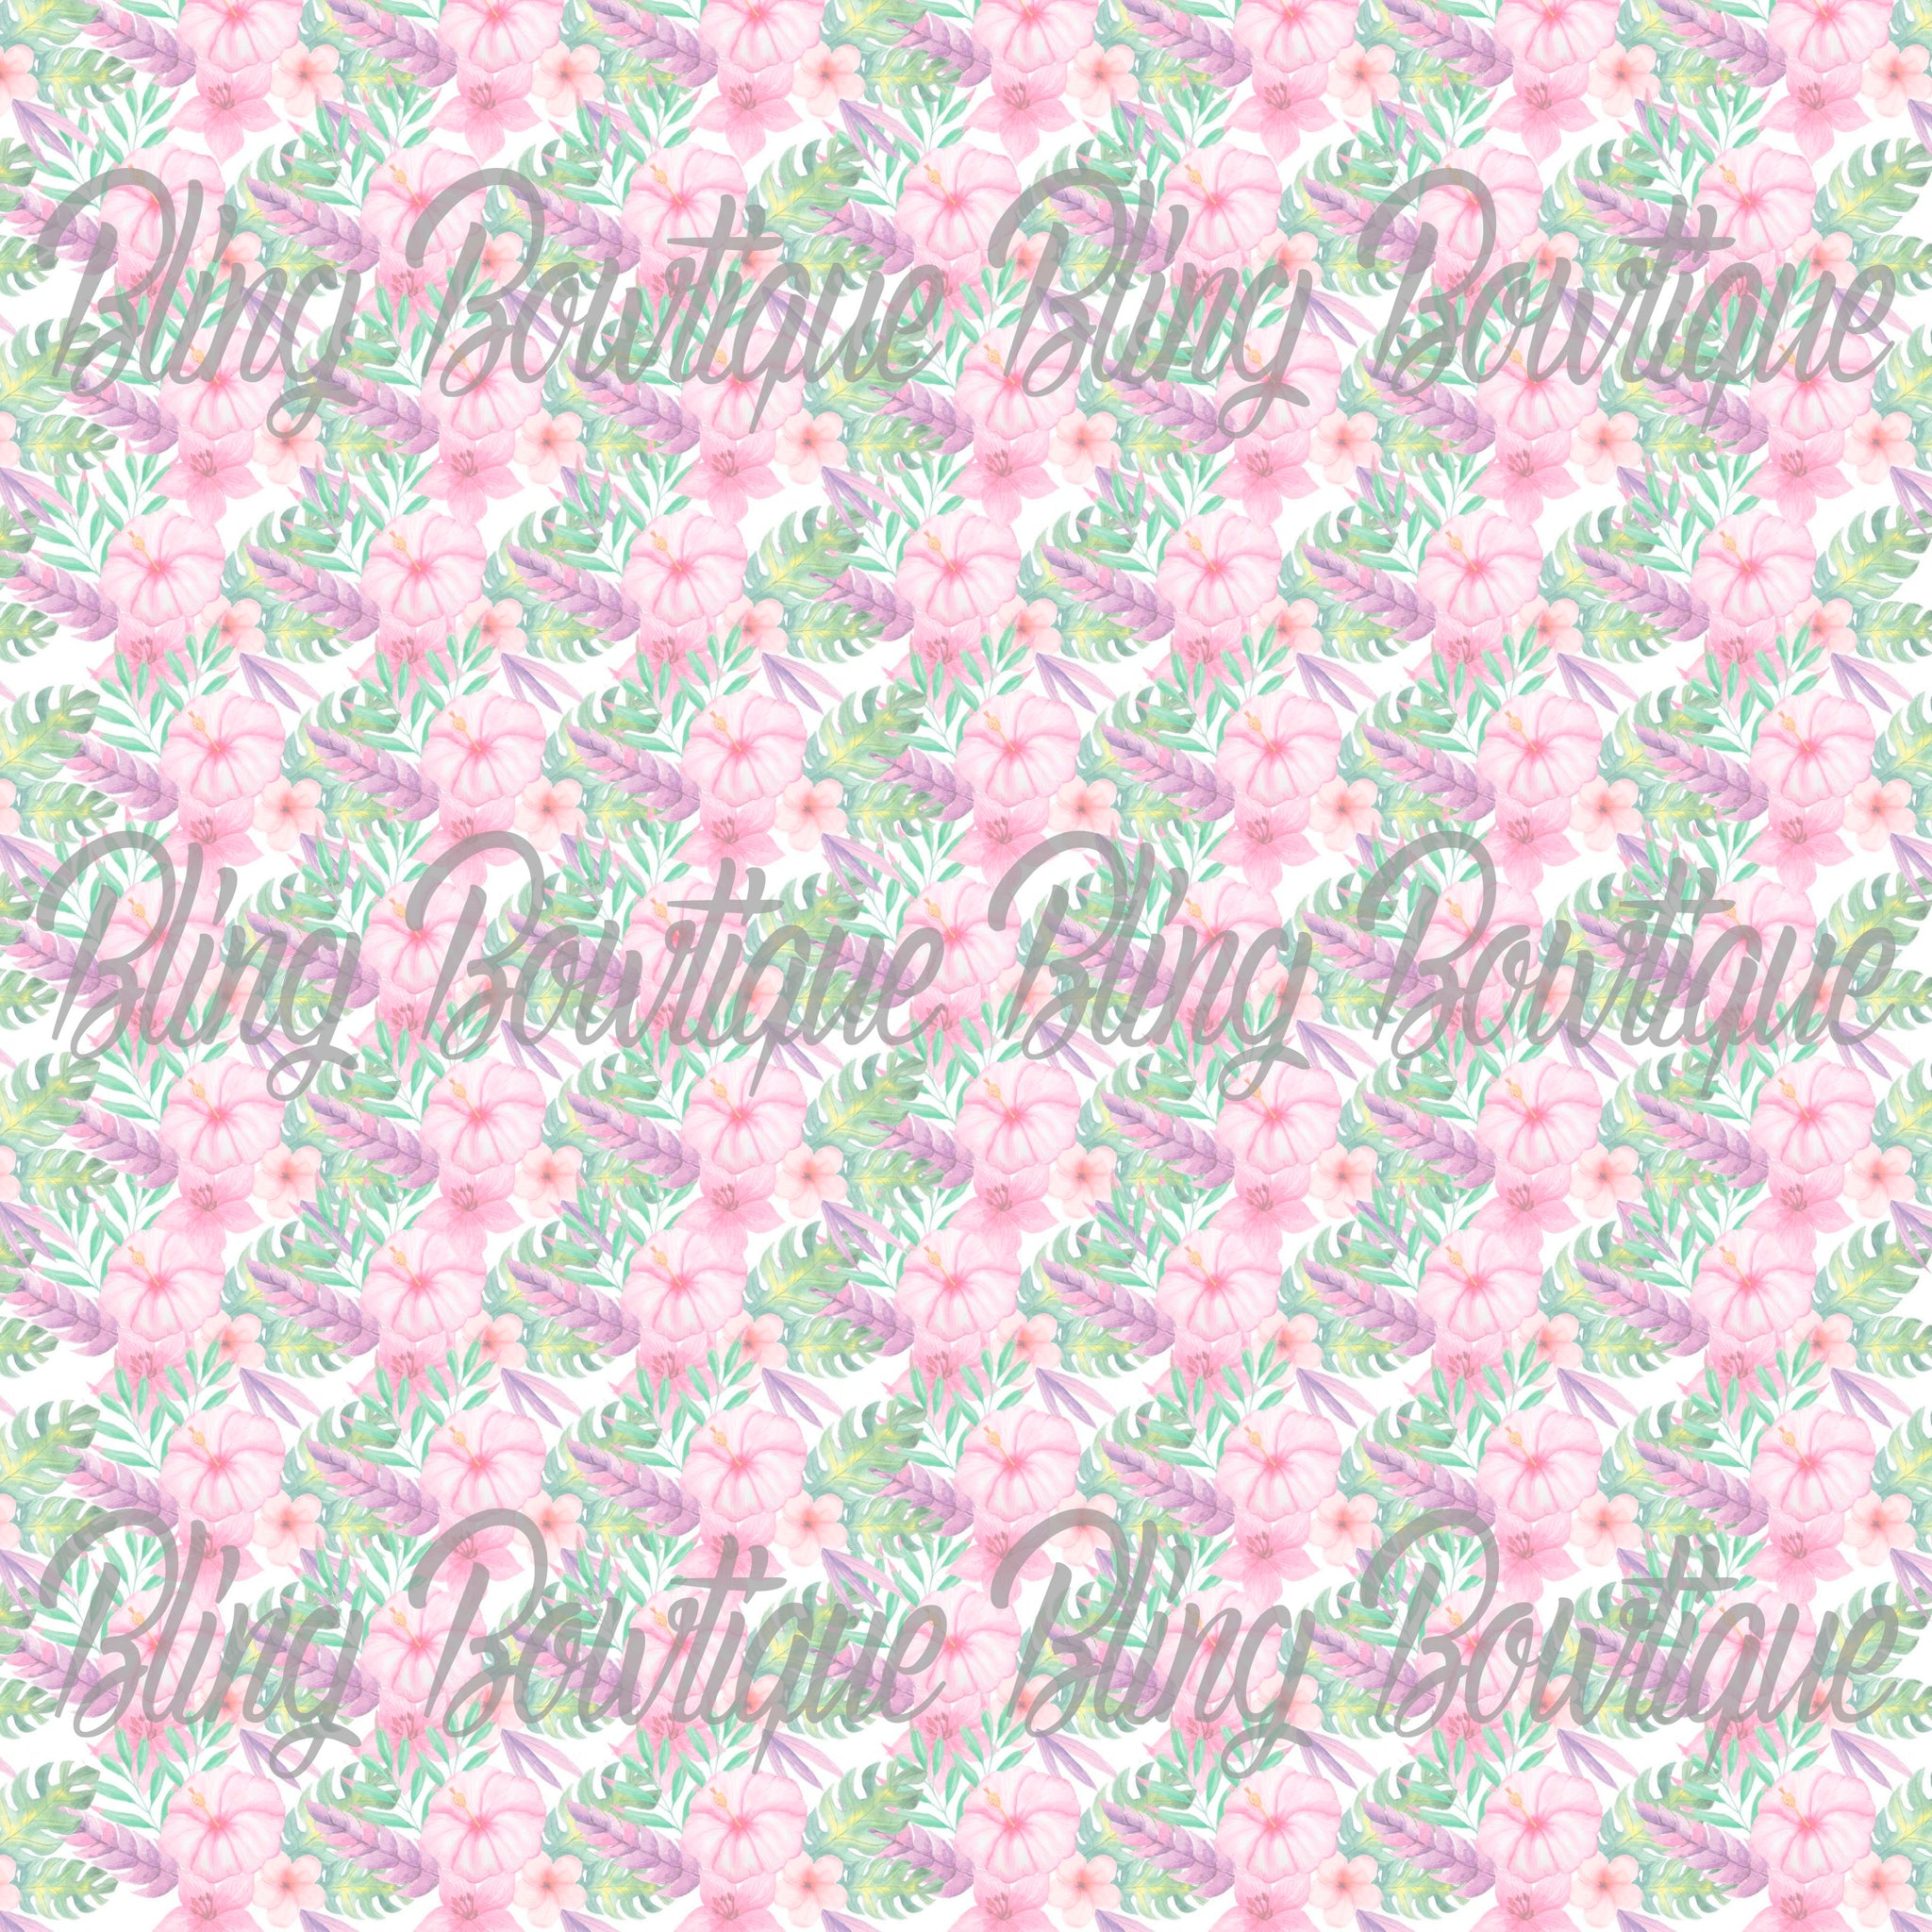 Fantastic Florals 11 Printed Glitter Canvas, Regular Canvas, Faux Leather For Bows